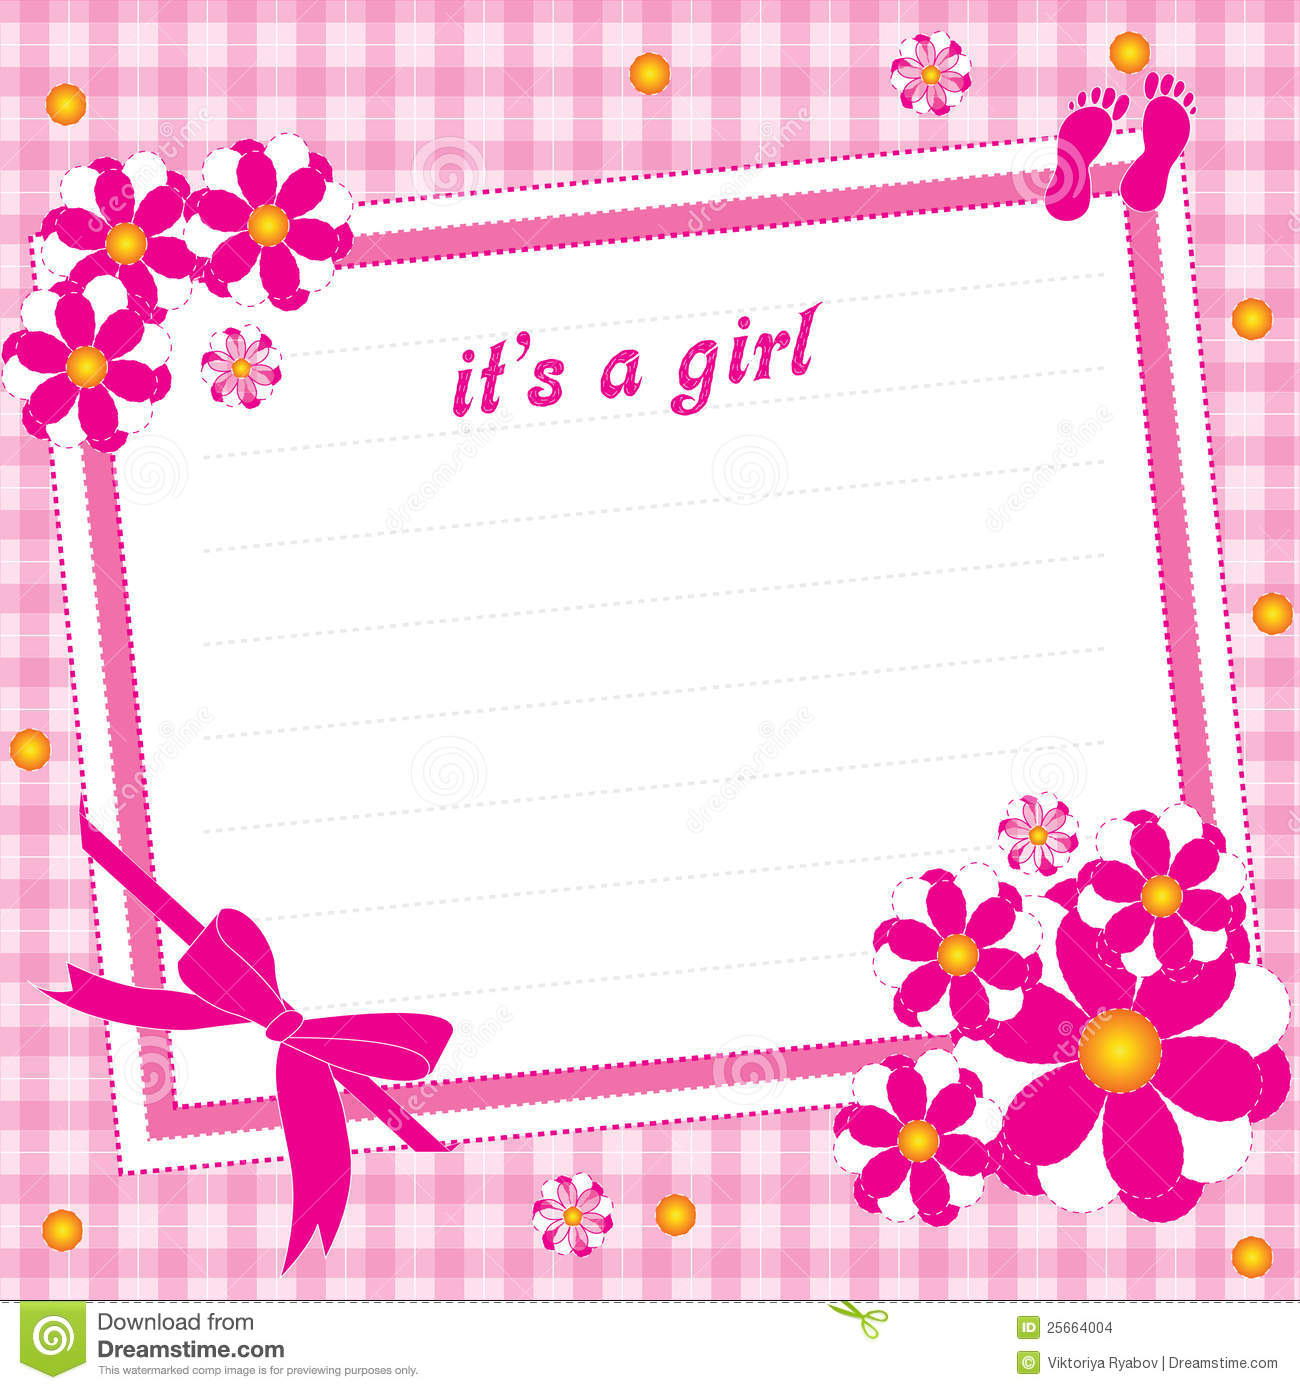 Illustration greeting card for girl on a pink background